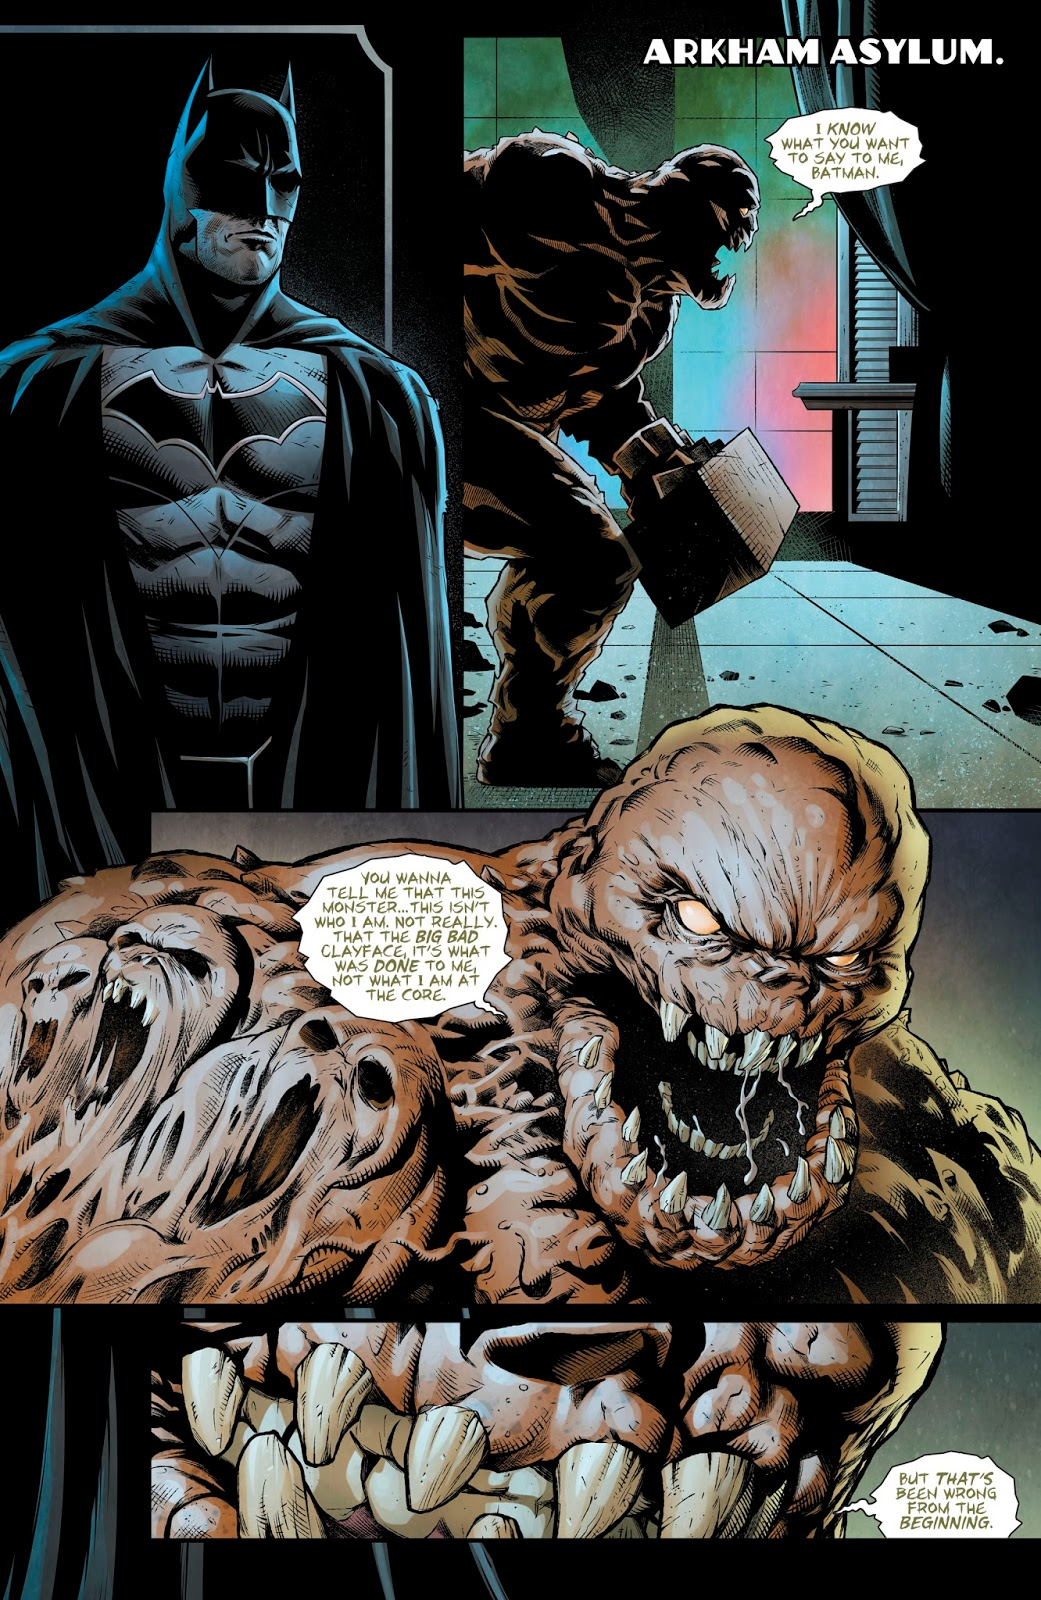 Batman VS Clayface (Detective Comics #972) ...